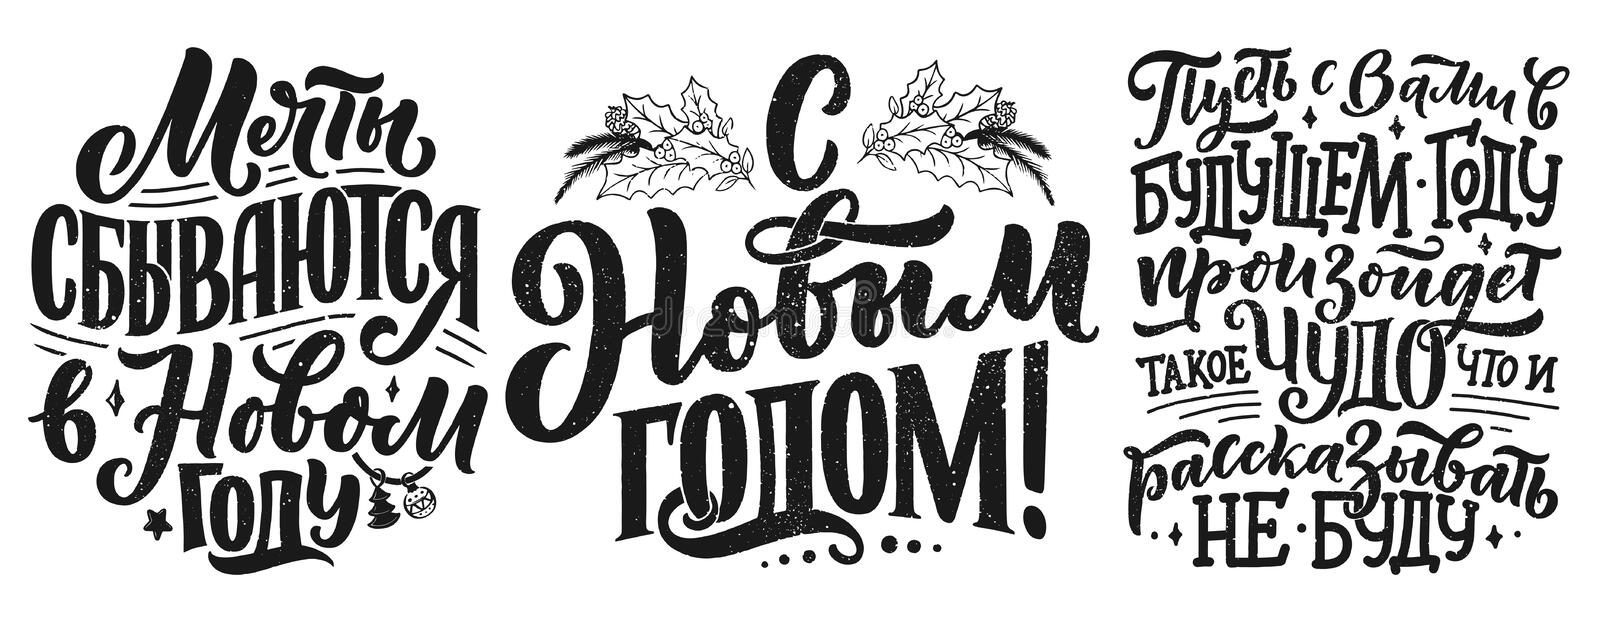 Lettering quotes, Russian text - Happy New Year, wish on cyrillic language and dreams come true in the new year. Simple vector. stock illustration